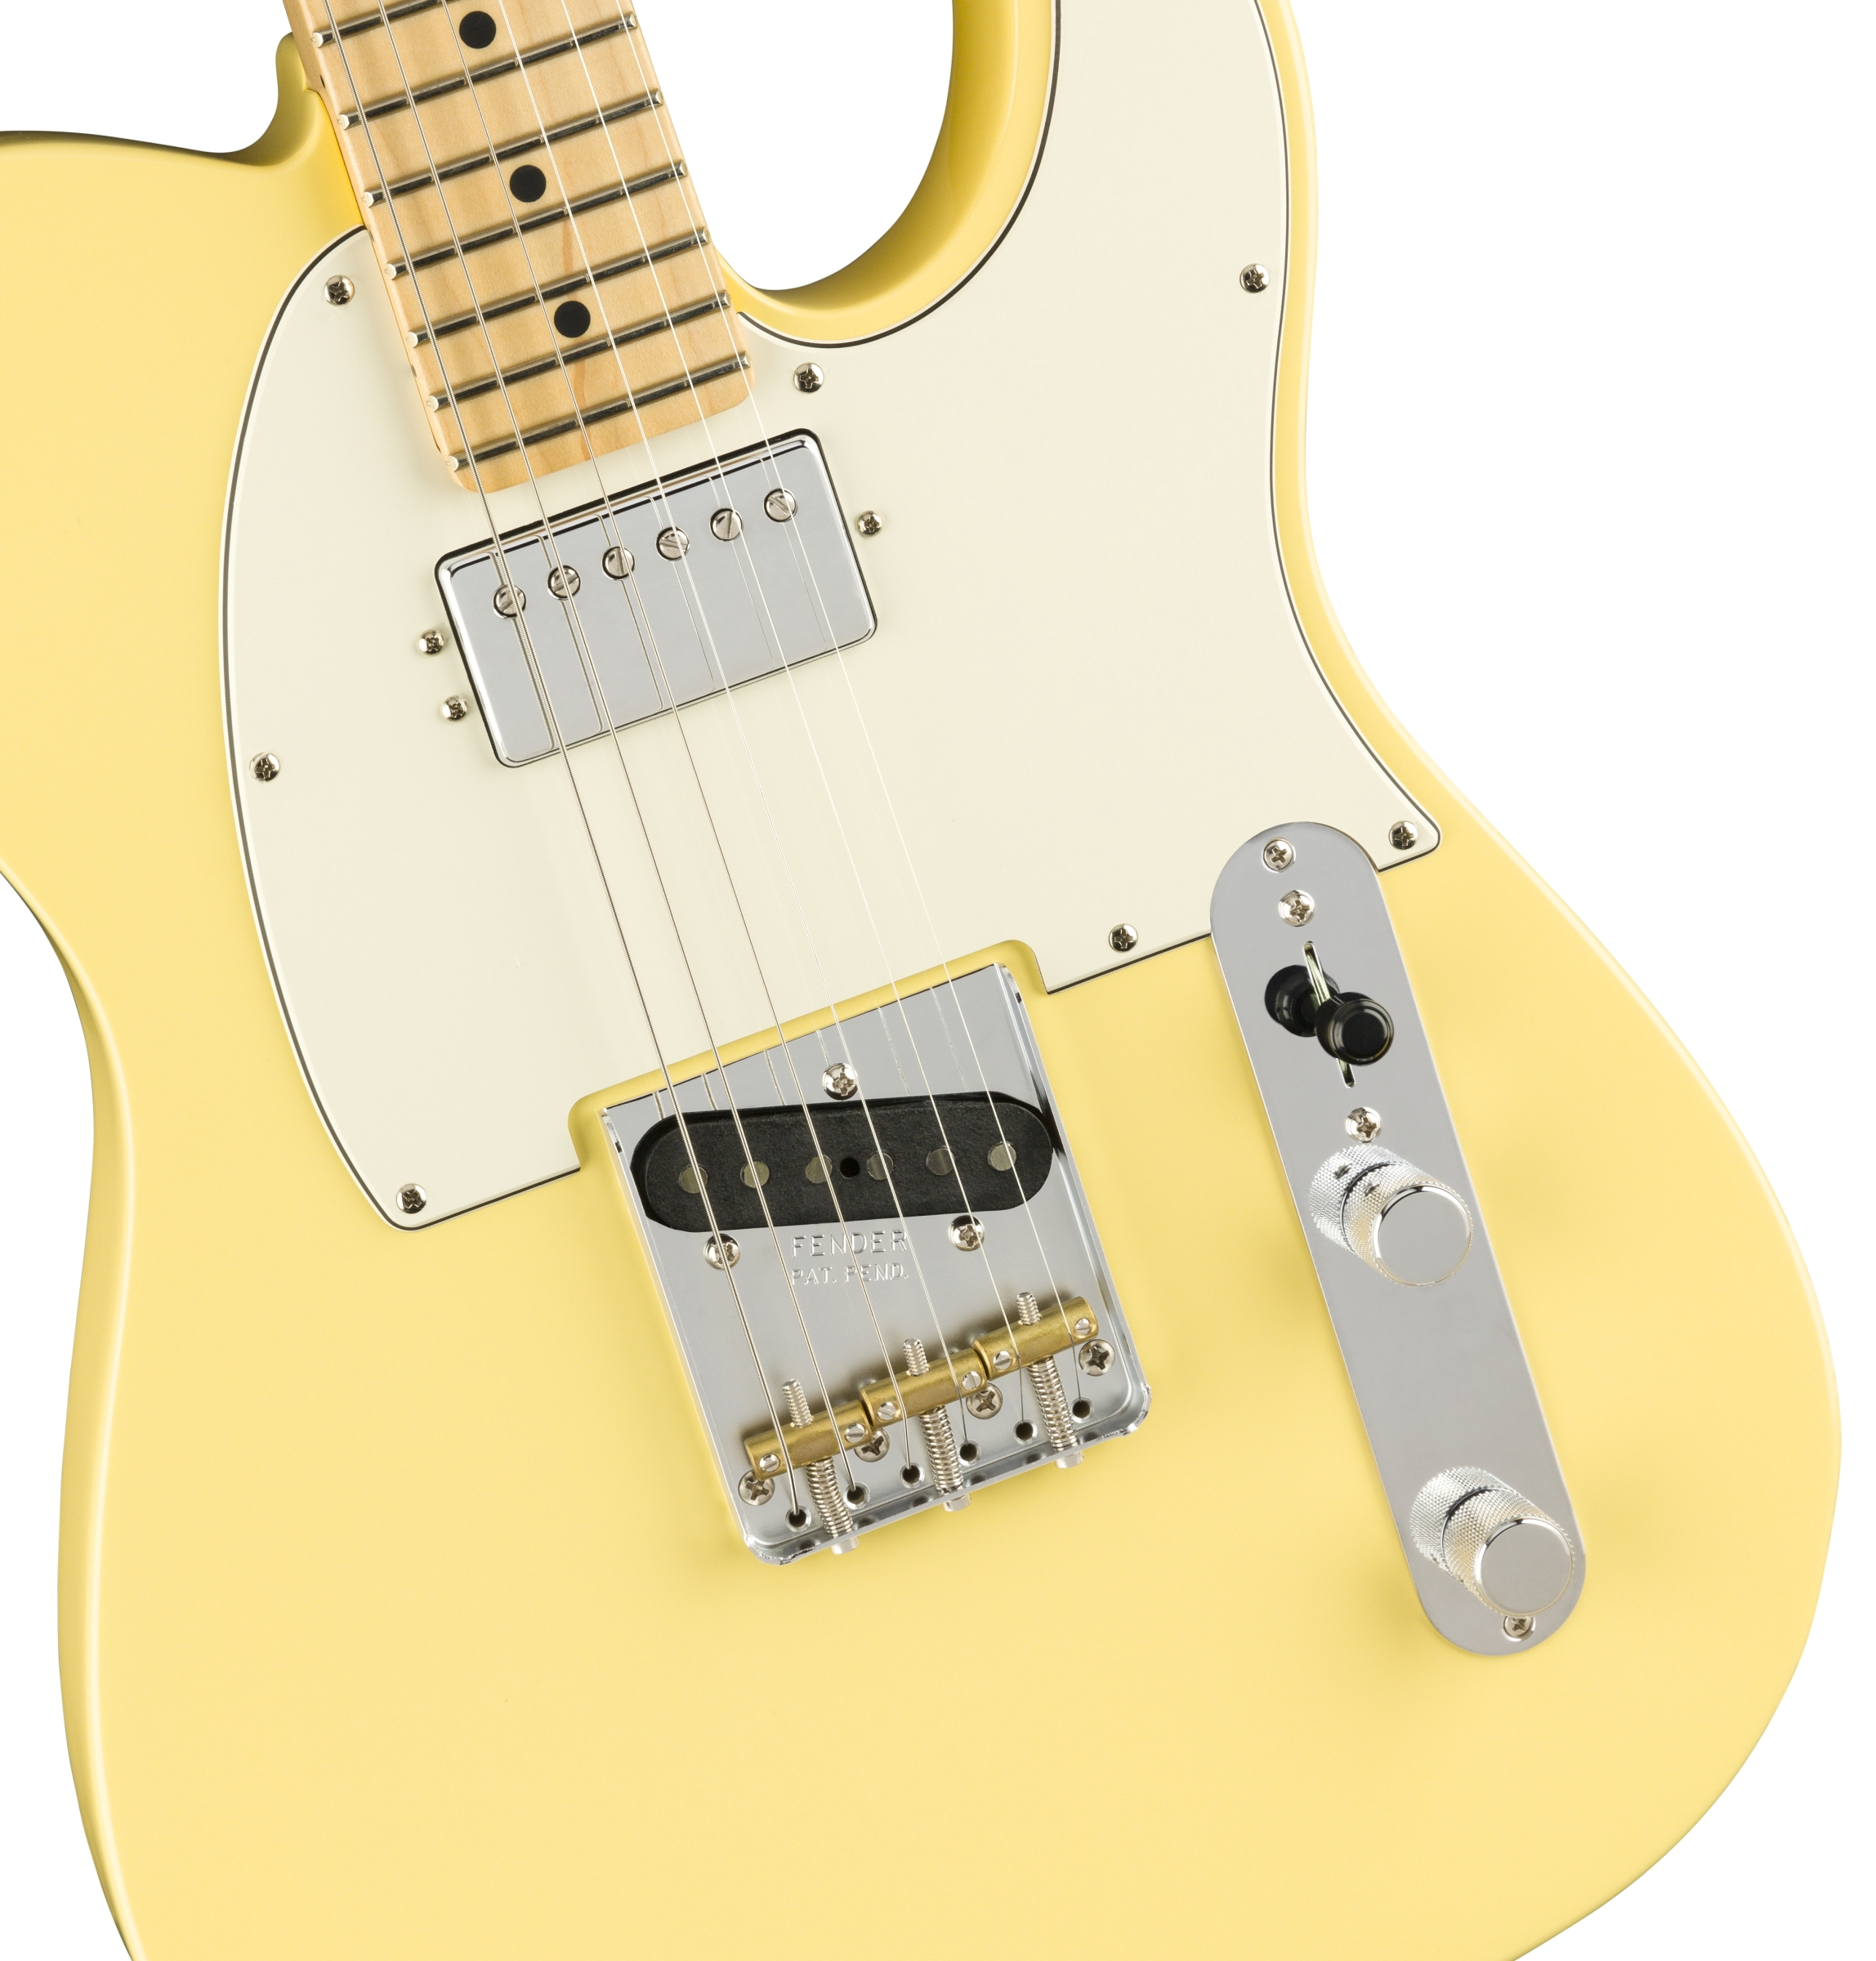 American Performer Telecaster Hum Electric Guitars Fender Deluxe Players Strat Wiring Diagram Tap To Expand